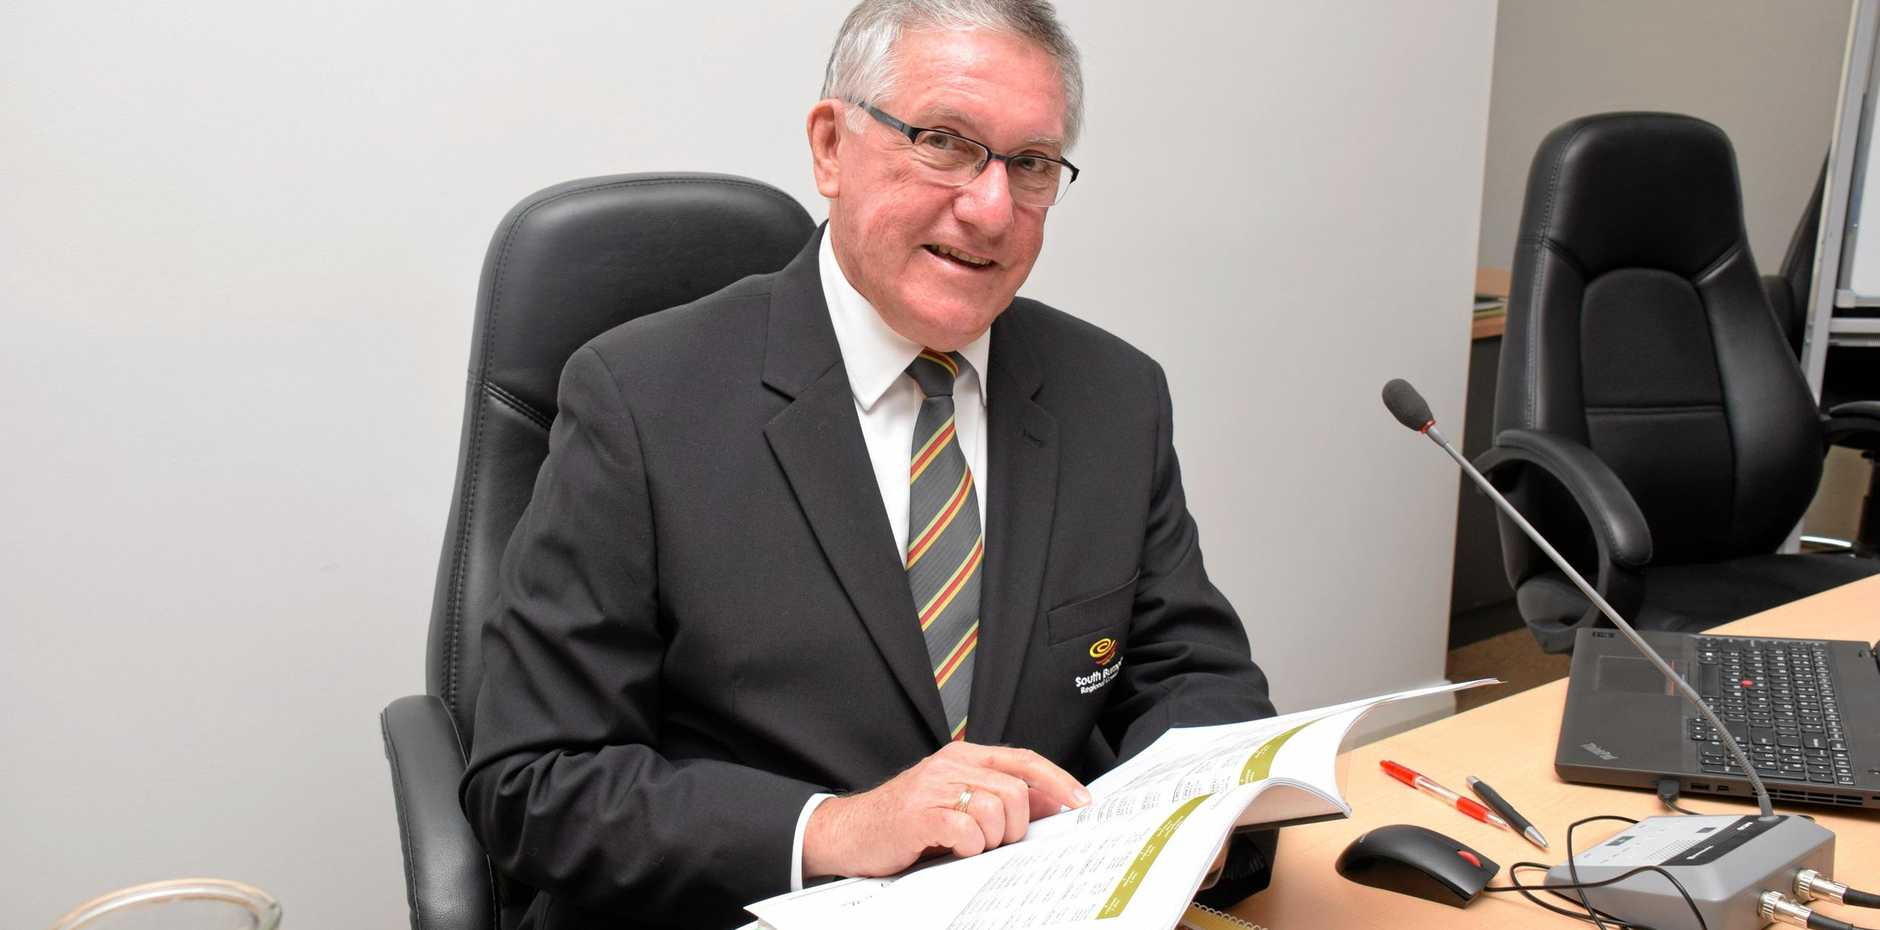 Mayor Keith Campbell in his office at the South Burnett Regional Council